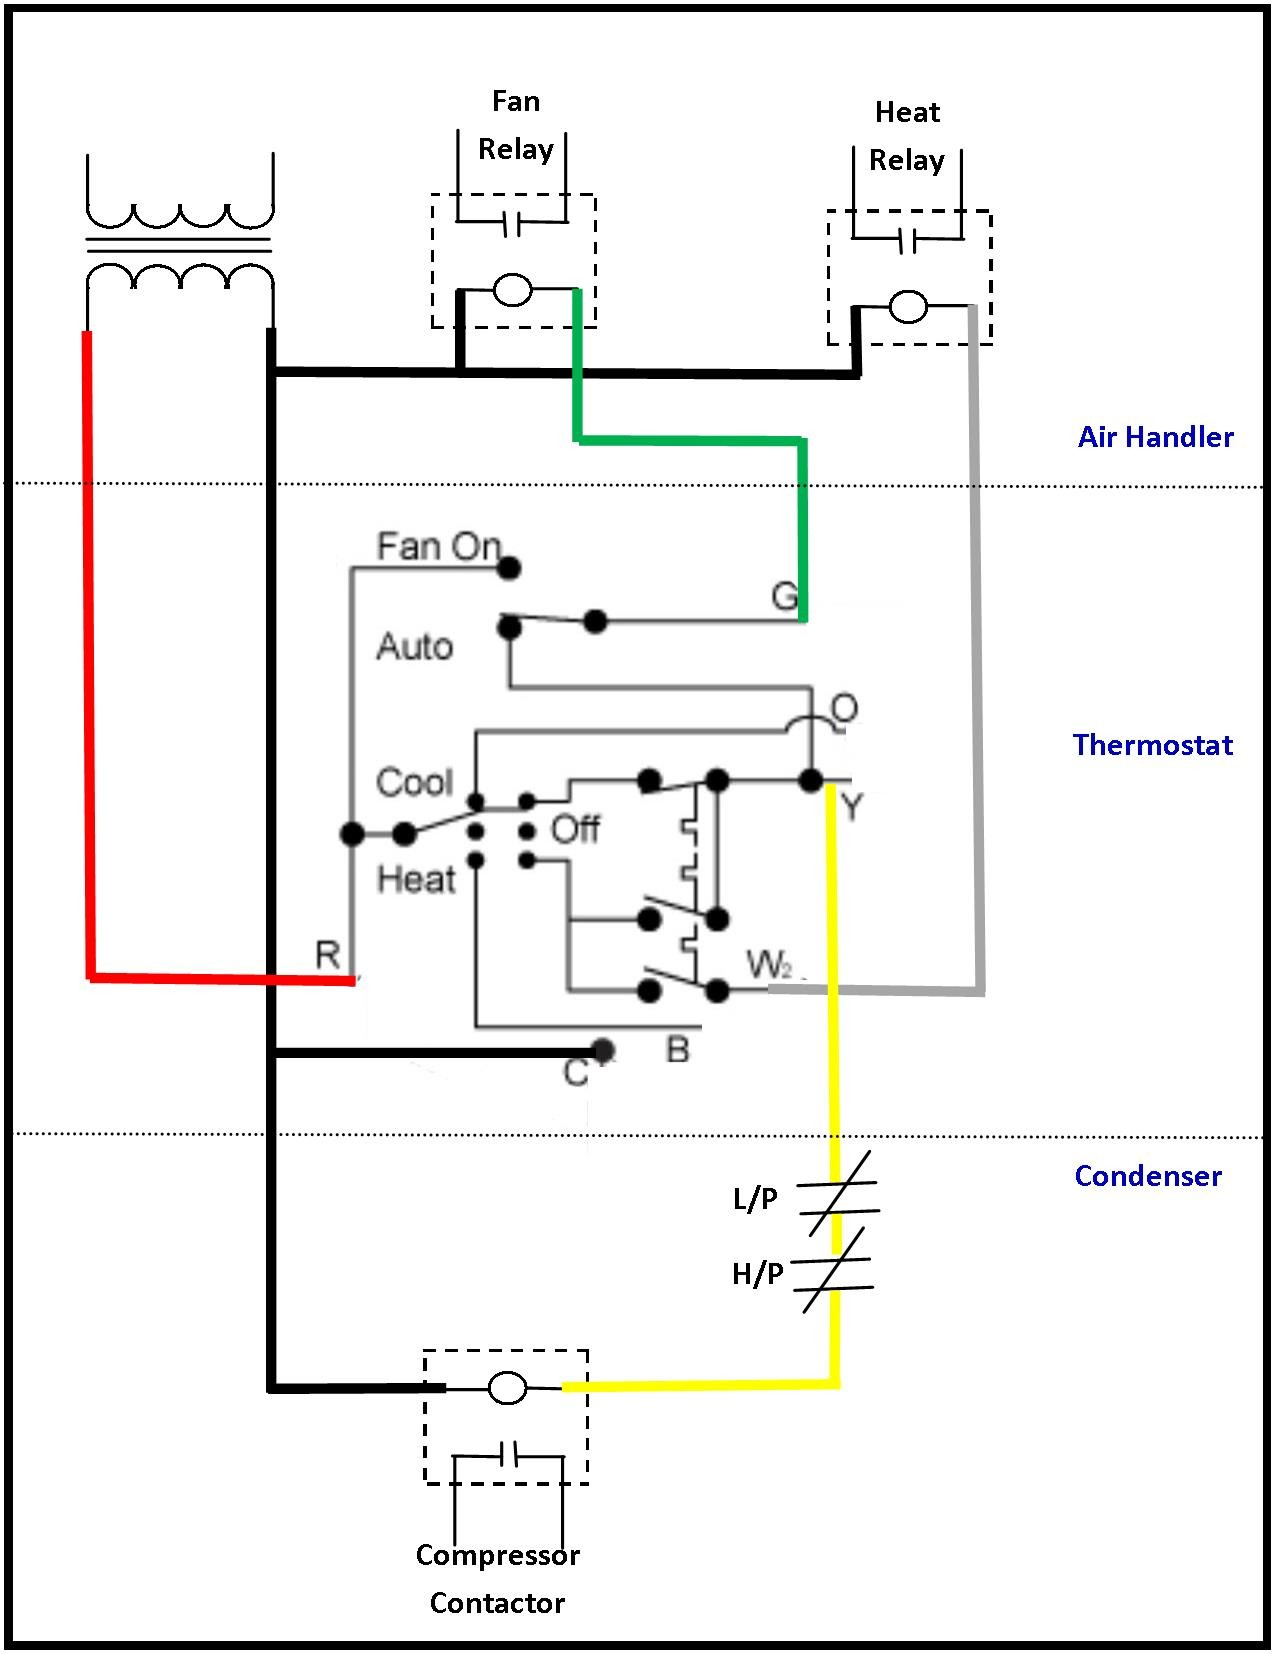 480 Volt Wiring Colors | Wiring Diagram  Phase Wiring Diagrams Volt Strip Heat on